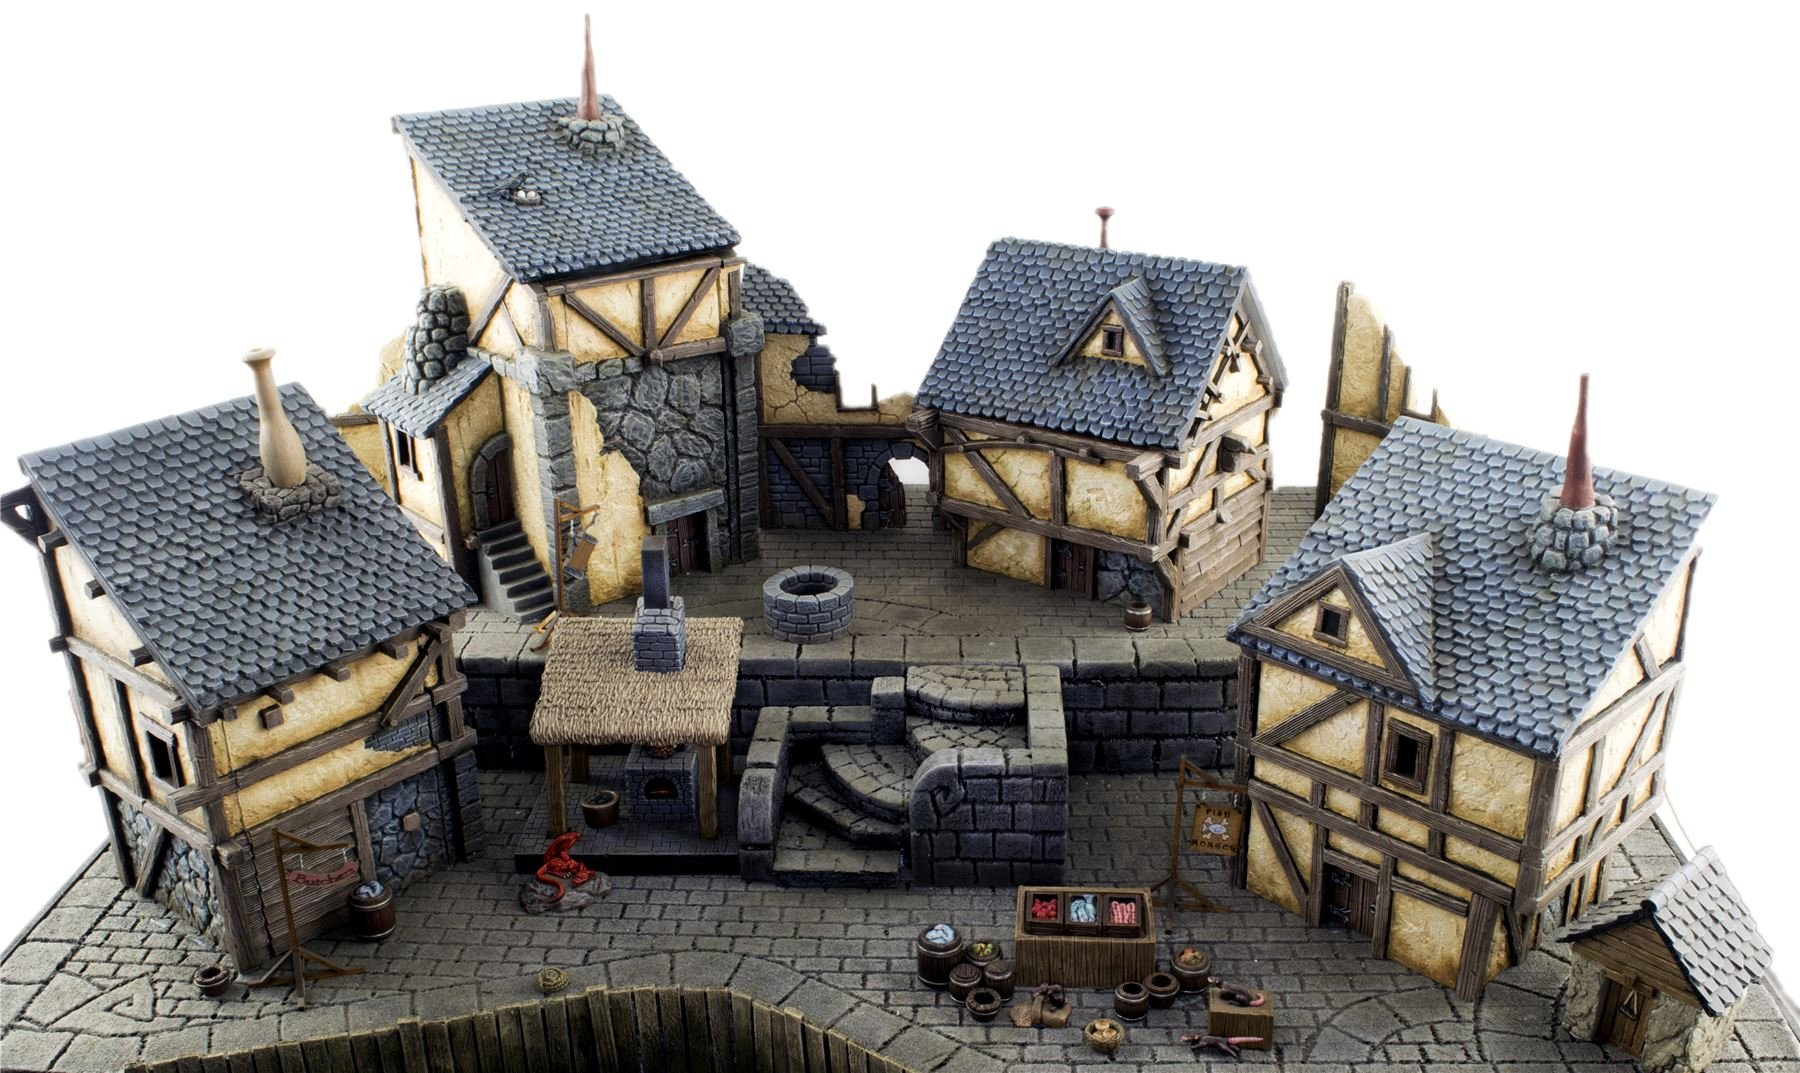 Fantasy Fishing Village by WWG -Medieval Wargame Scenery & Terrain